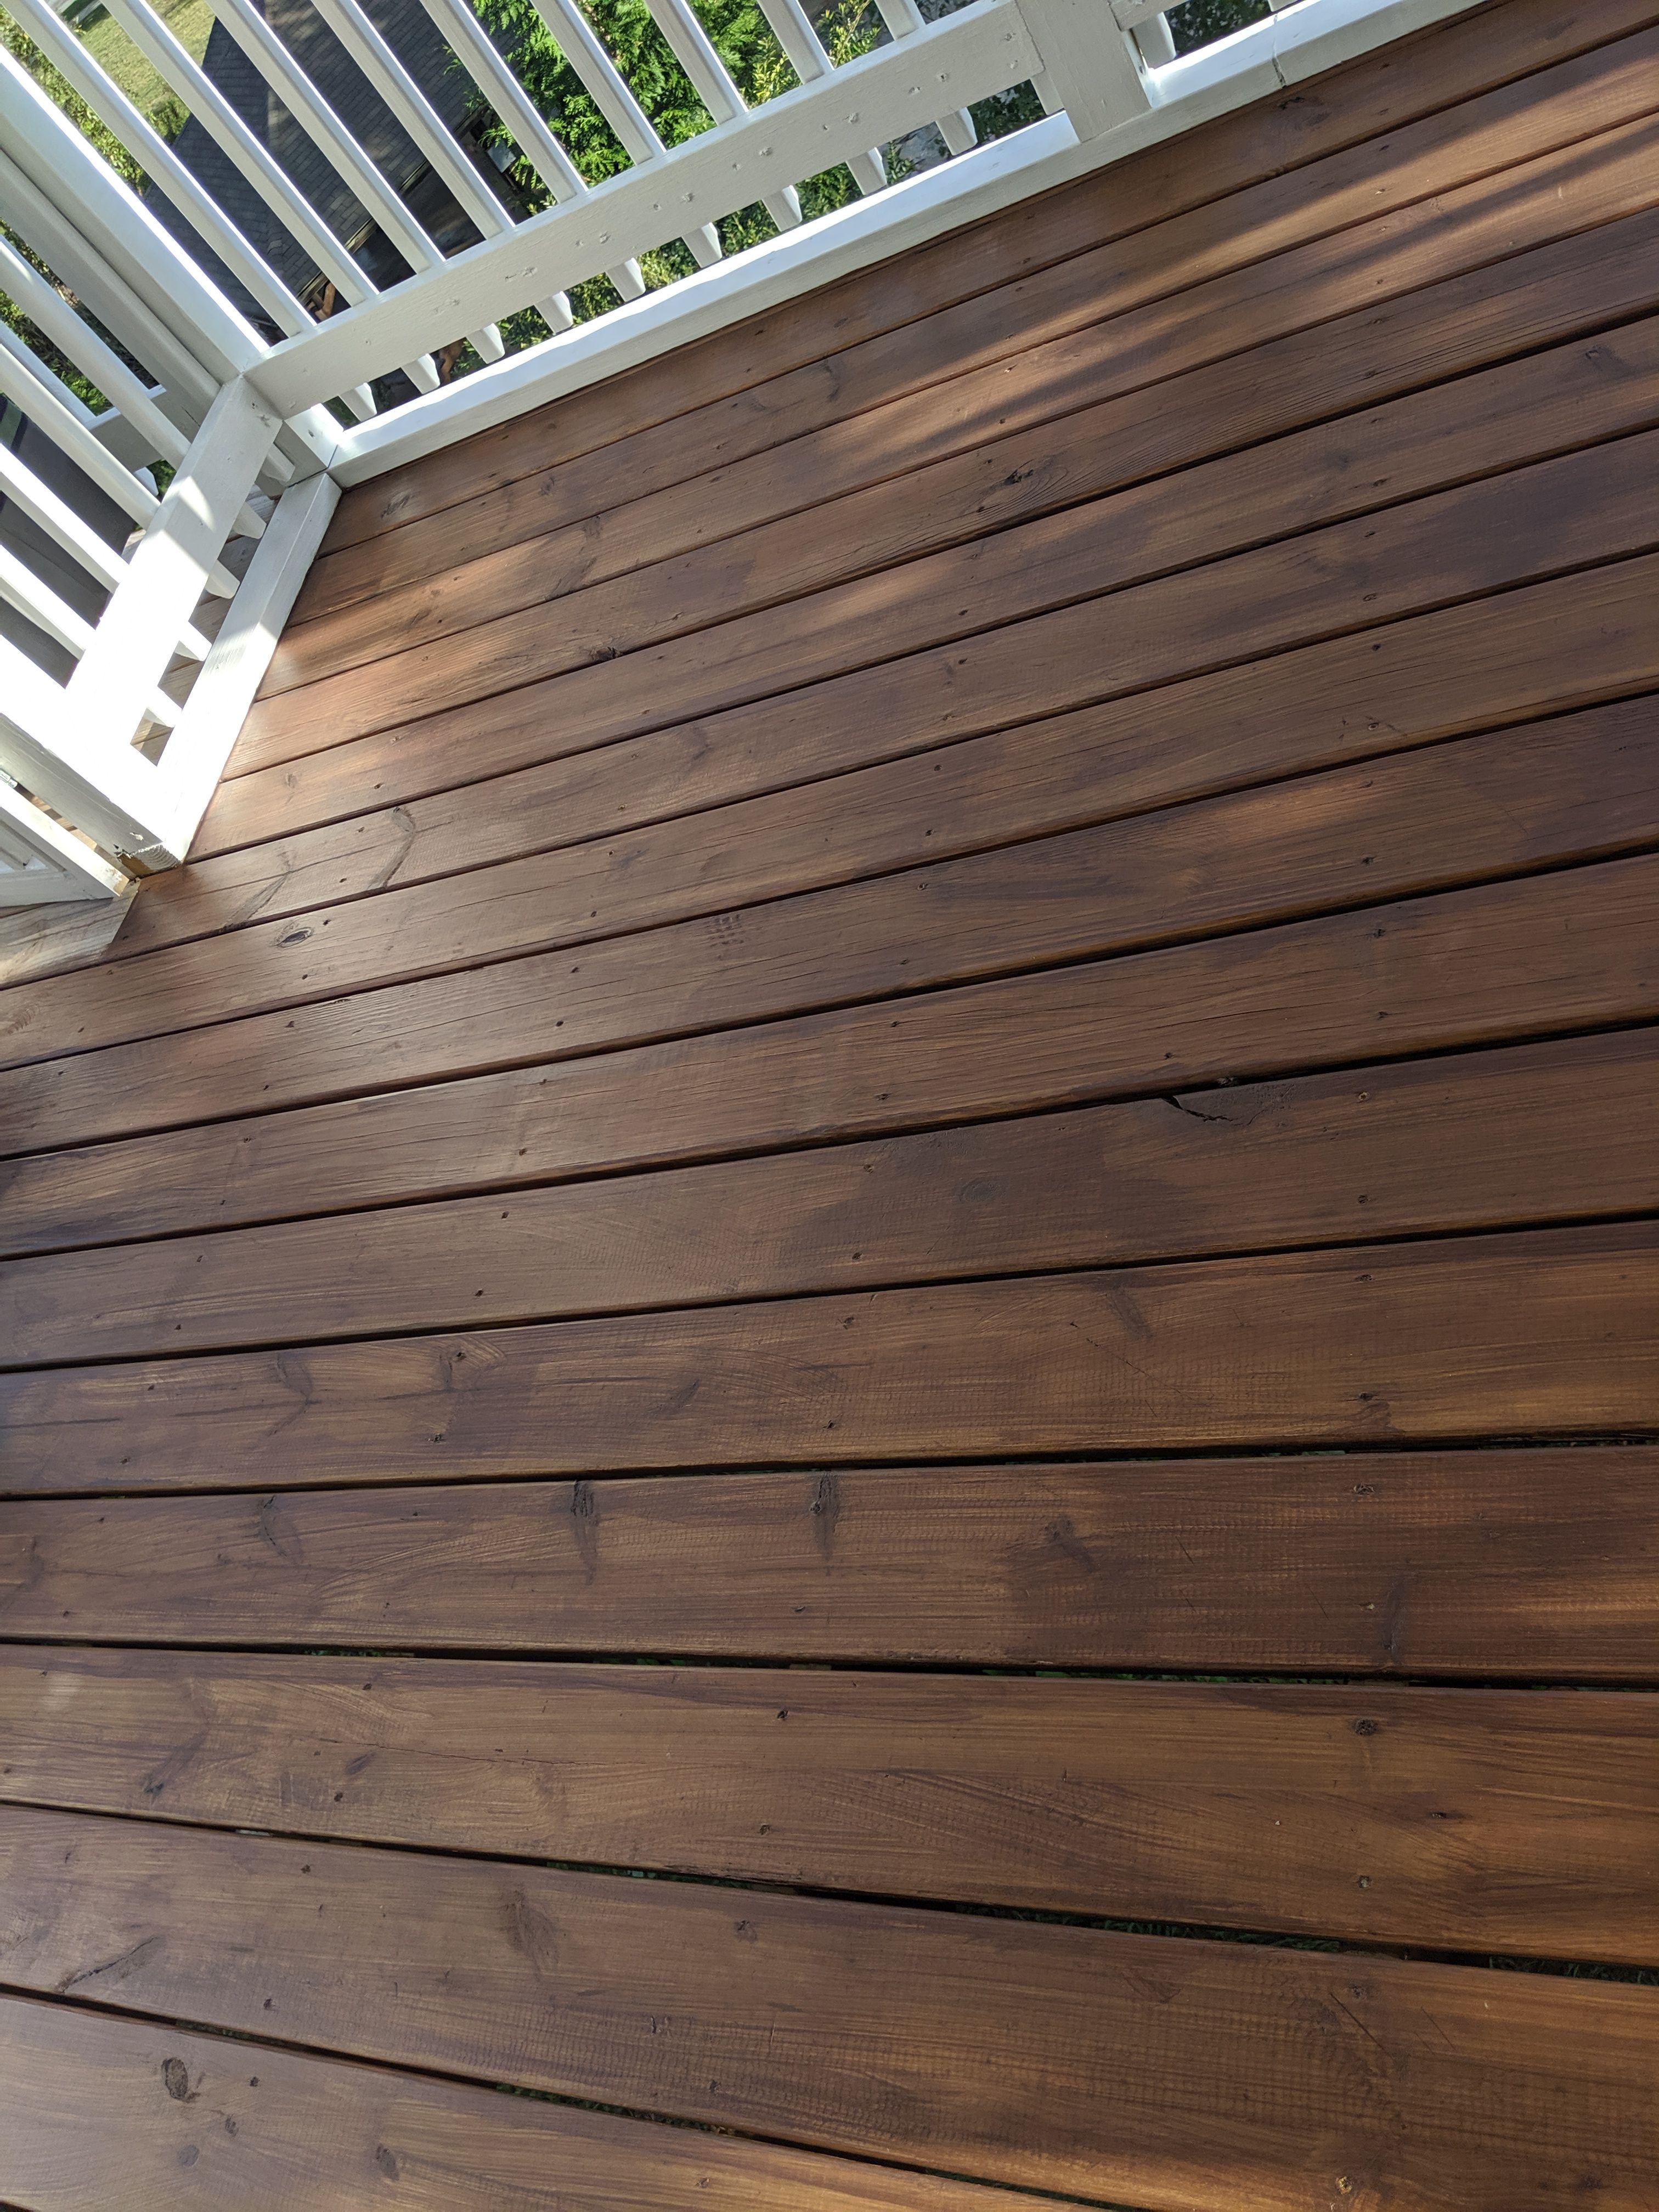 Benajamin Moore Arborcoat Semi Transparent Stain In Fresh Brew On New Wood Outdoor Wood Stain Deck Stain Colors Wood Deck Stain